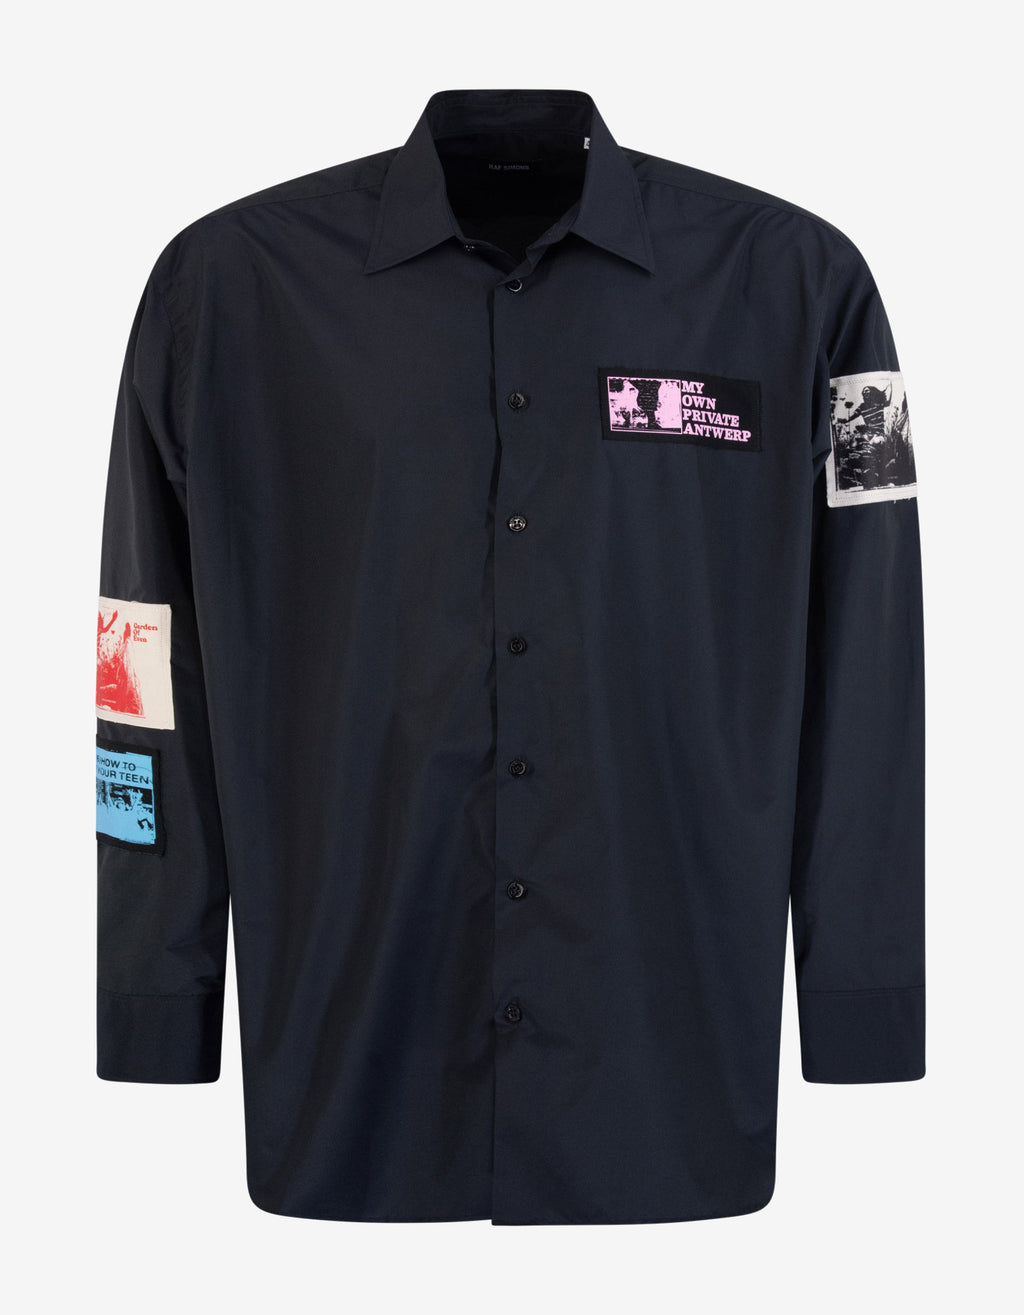 Navy Blue Oversized Shirt with Patches